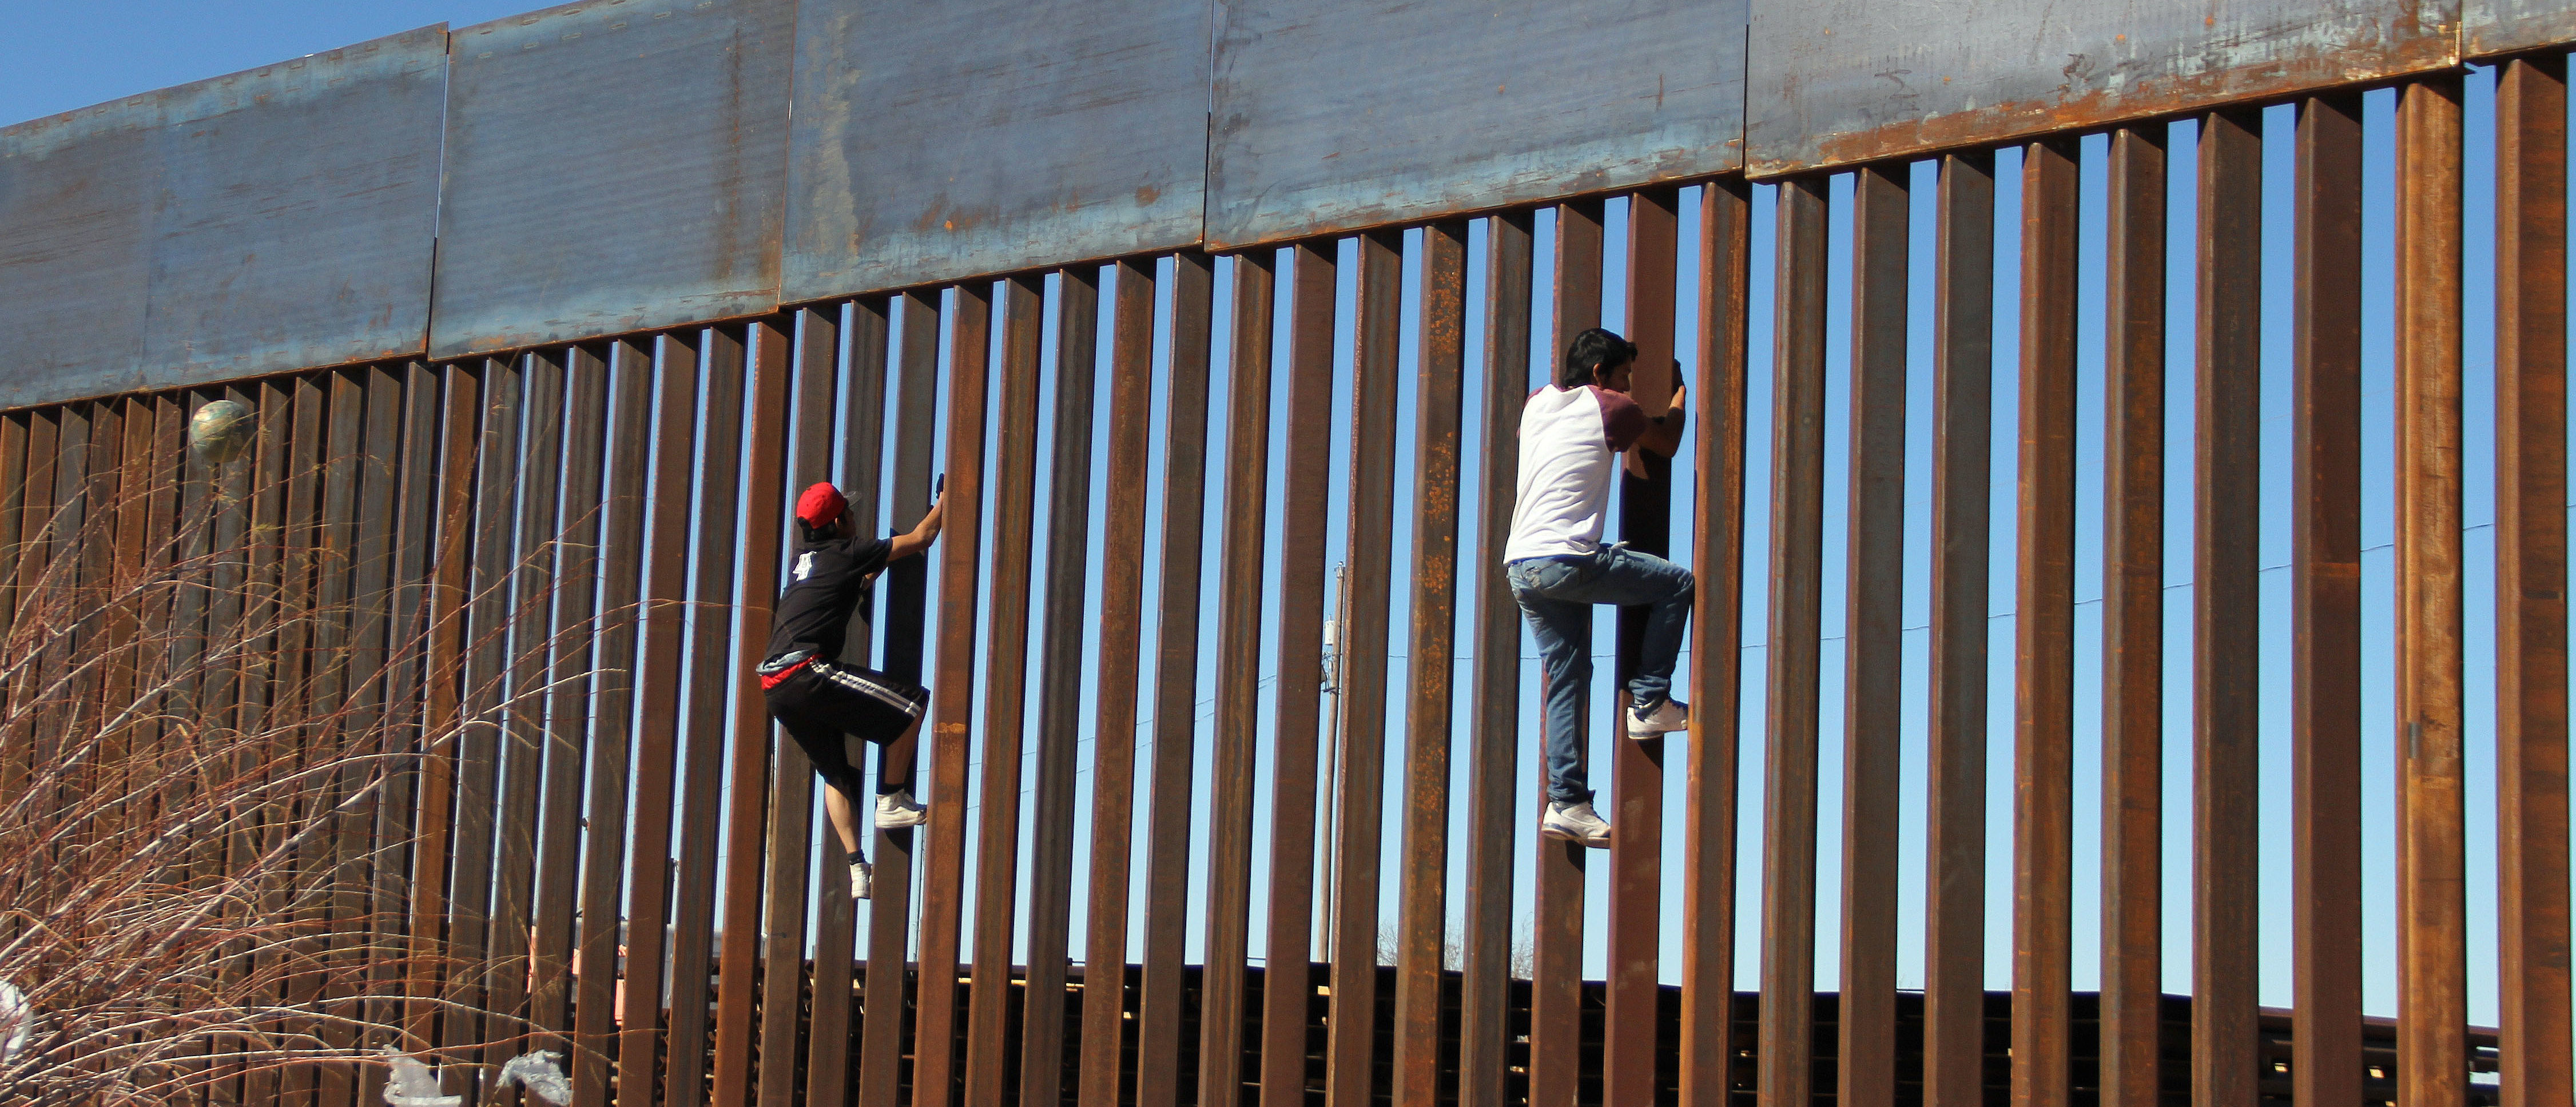 "TOPSHOT - Boys play around, climbing the border division between Mexico and the US in Ciudad Juarez, Mexico on January 26, 2017. US President Donald Trump on Thursday told Mexico's president to cancel an upcoming visit to Washington if he is unwilling to foot the bill for a border wall. Escalating a cross border war of words, Trump took to Twitter to publicly upbraid Enrique Pena Nieto. ""If Mexico is unwilling to pay for the badly needed wall, then it would be better to cancel the upcoming meeting."" / AFP / HERIKA MARTINEZ (Photo credit should read HERIKA MARTINEZ/AFP/Getty Images)"